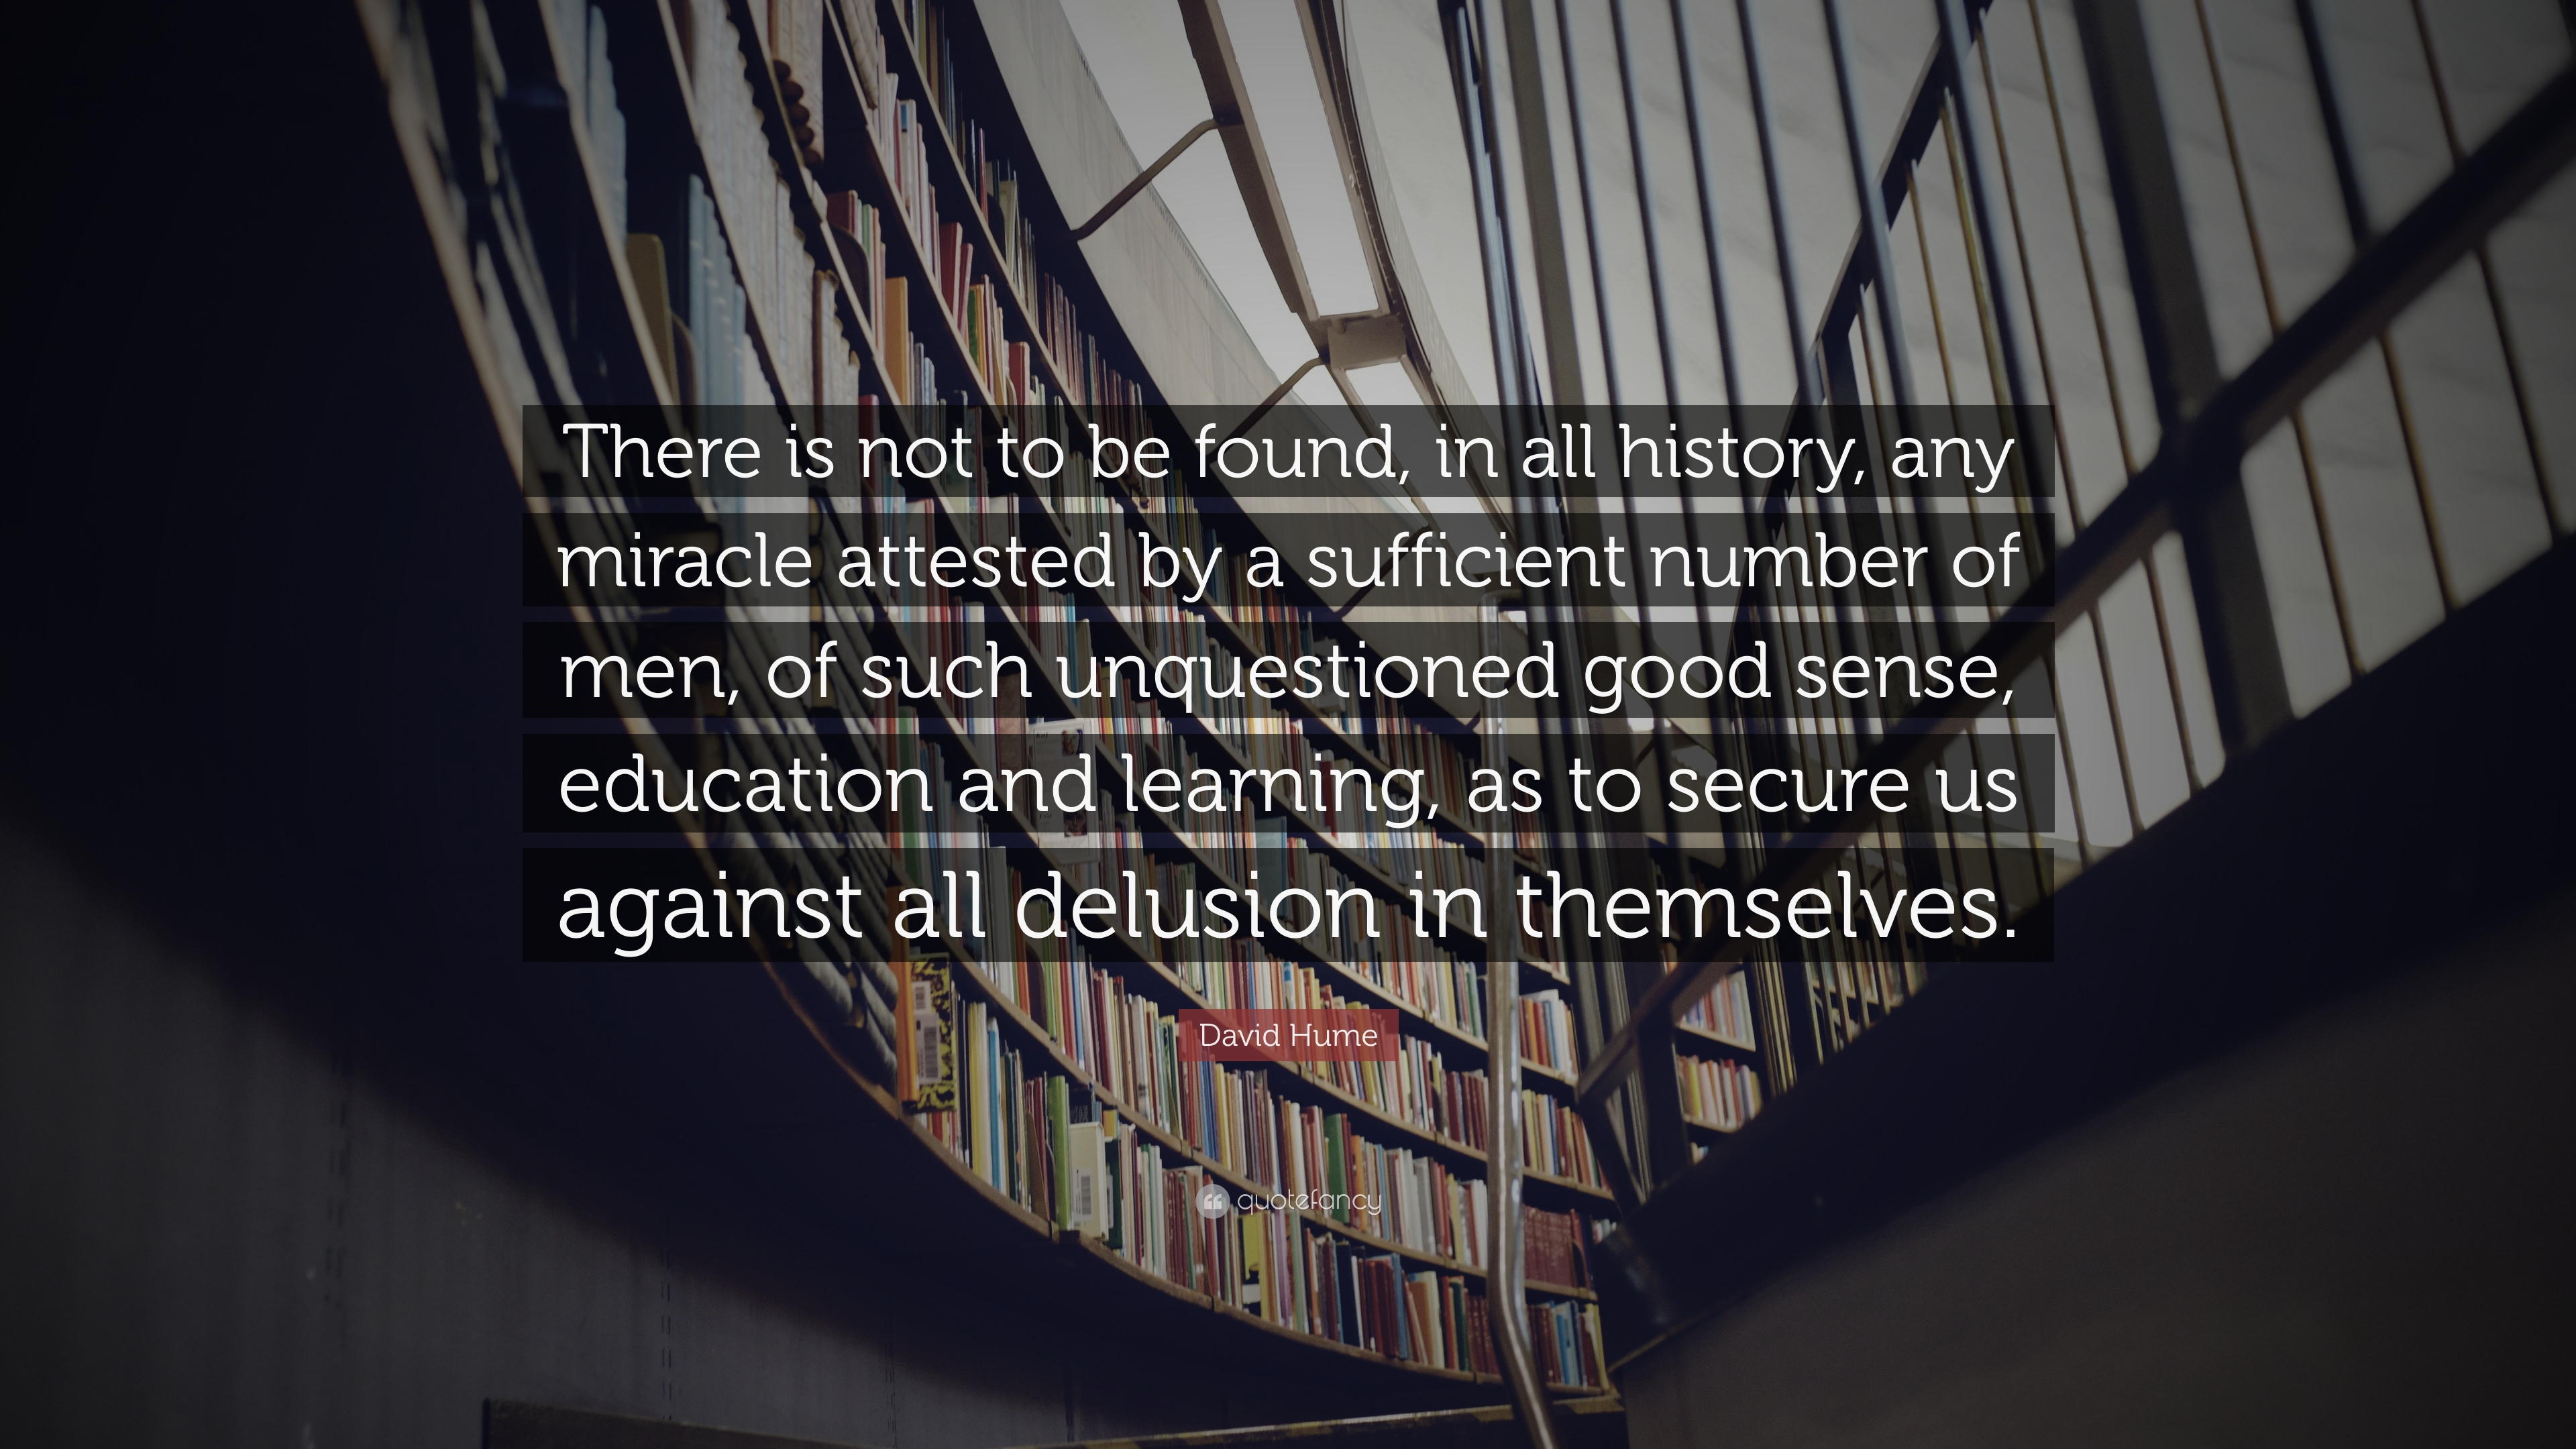 David Hume Quote u201cThere is not to